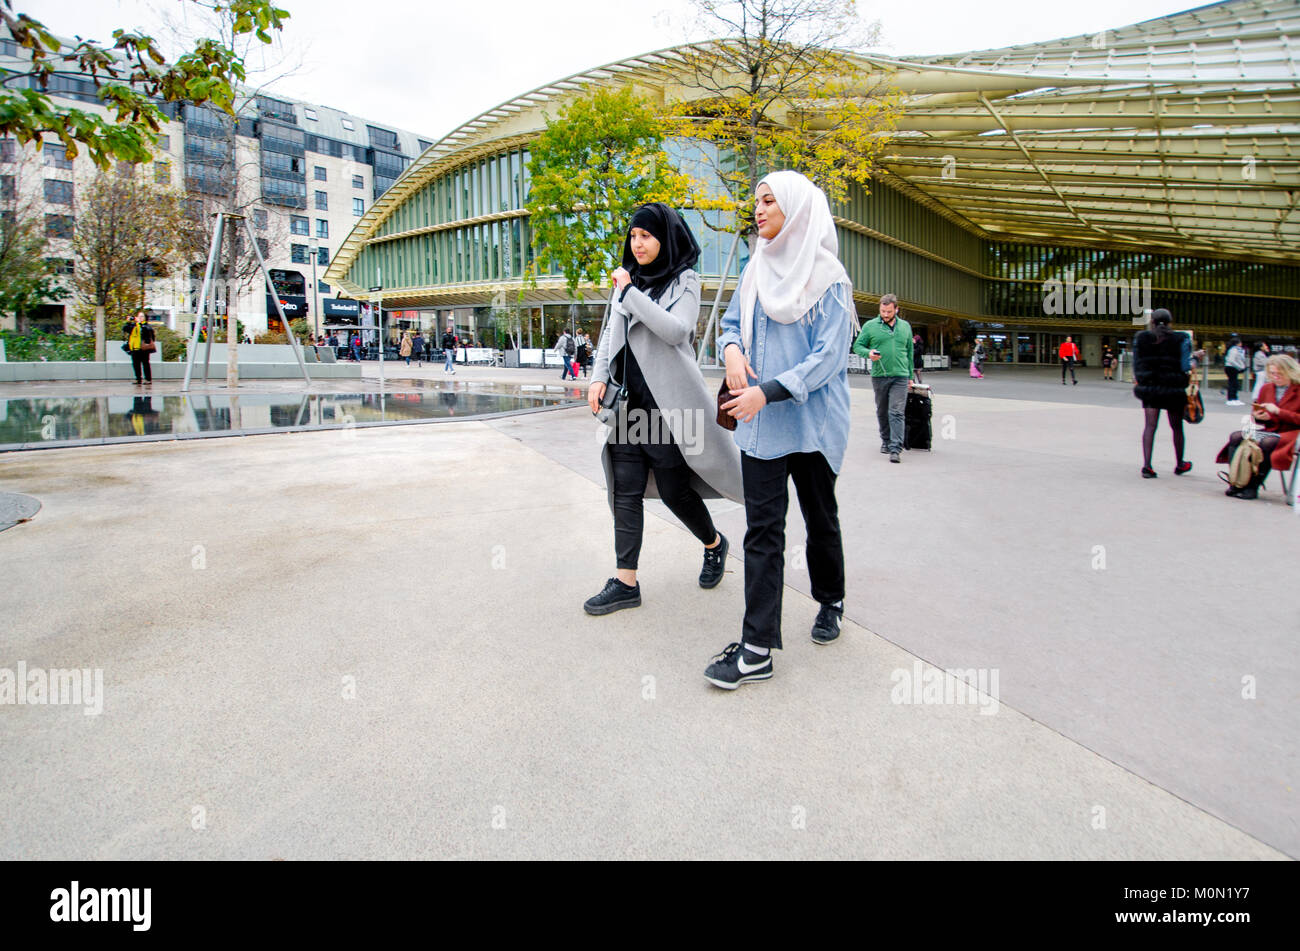 Paris, France. To young Muslim women with headscarves / Hijabs in Forum des Halles - Stock Image